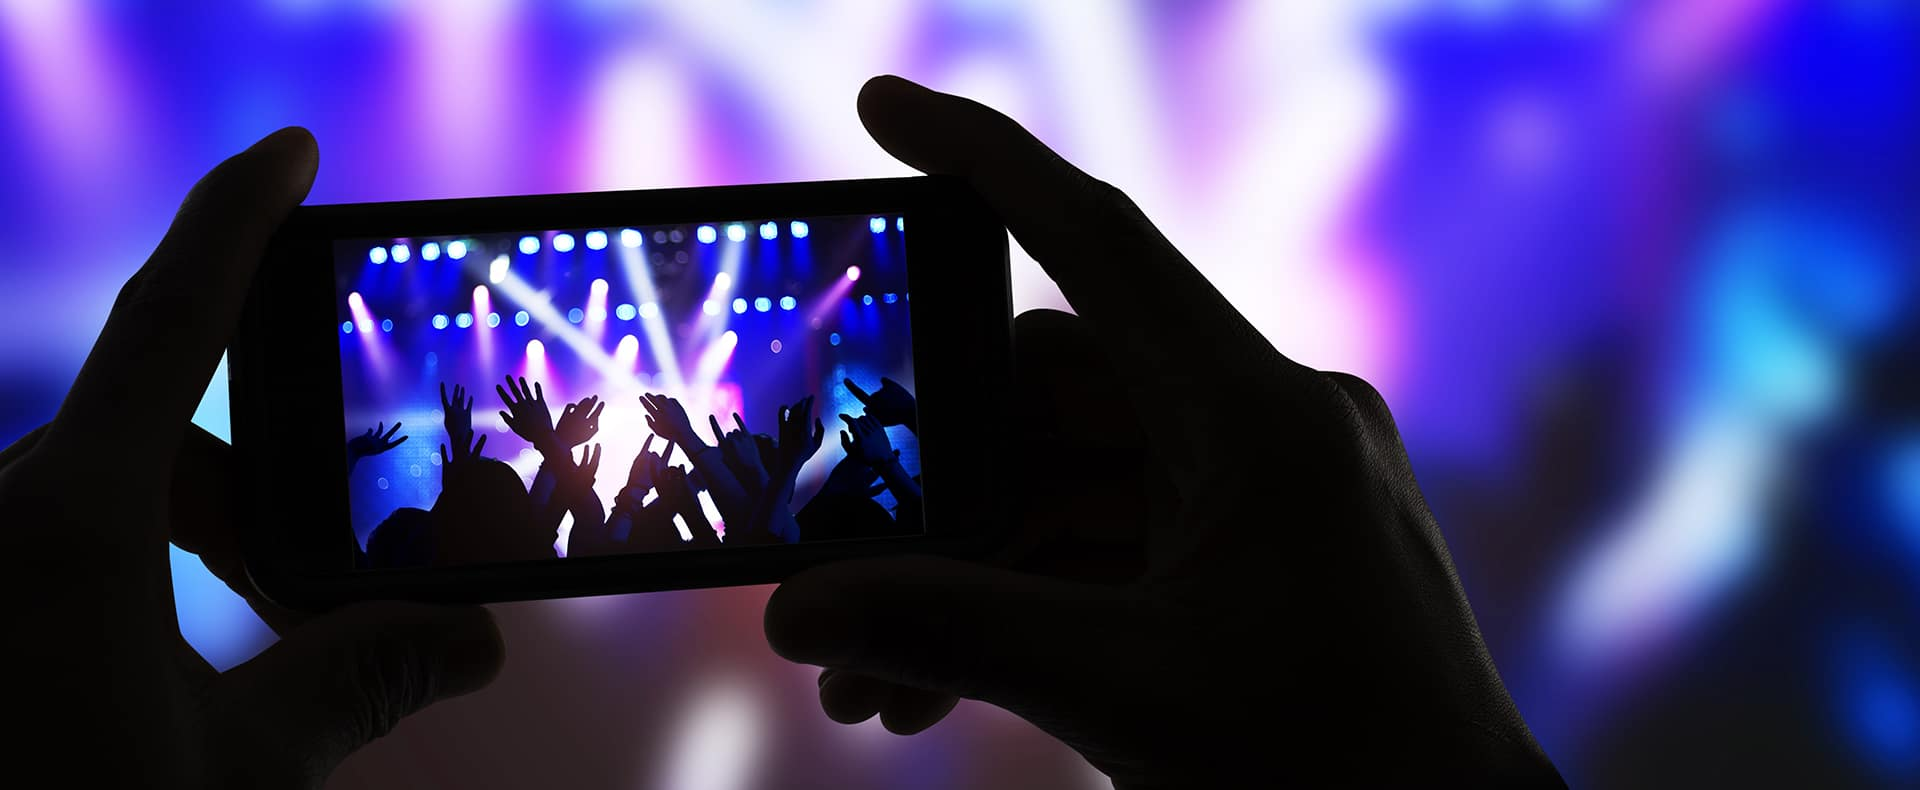 Live Streaming – The Lifeline That the Music Industry Needs